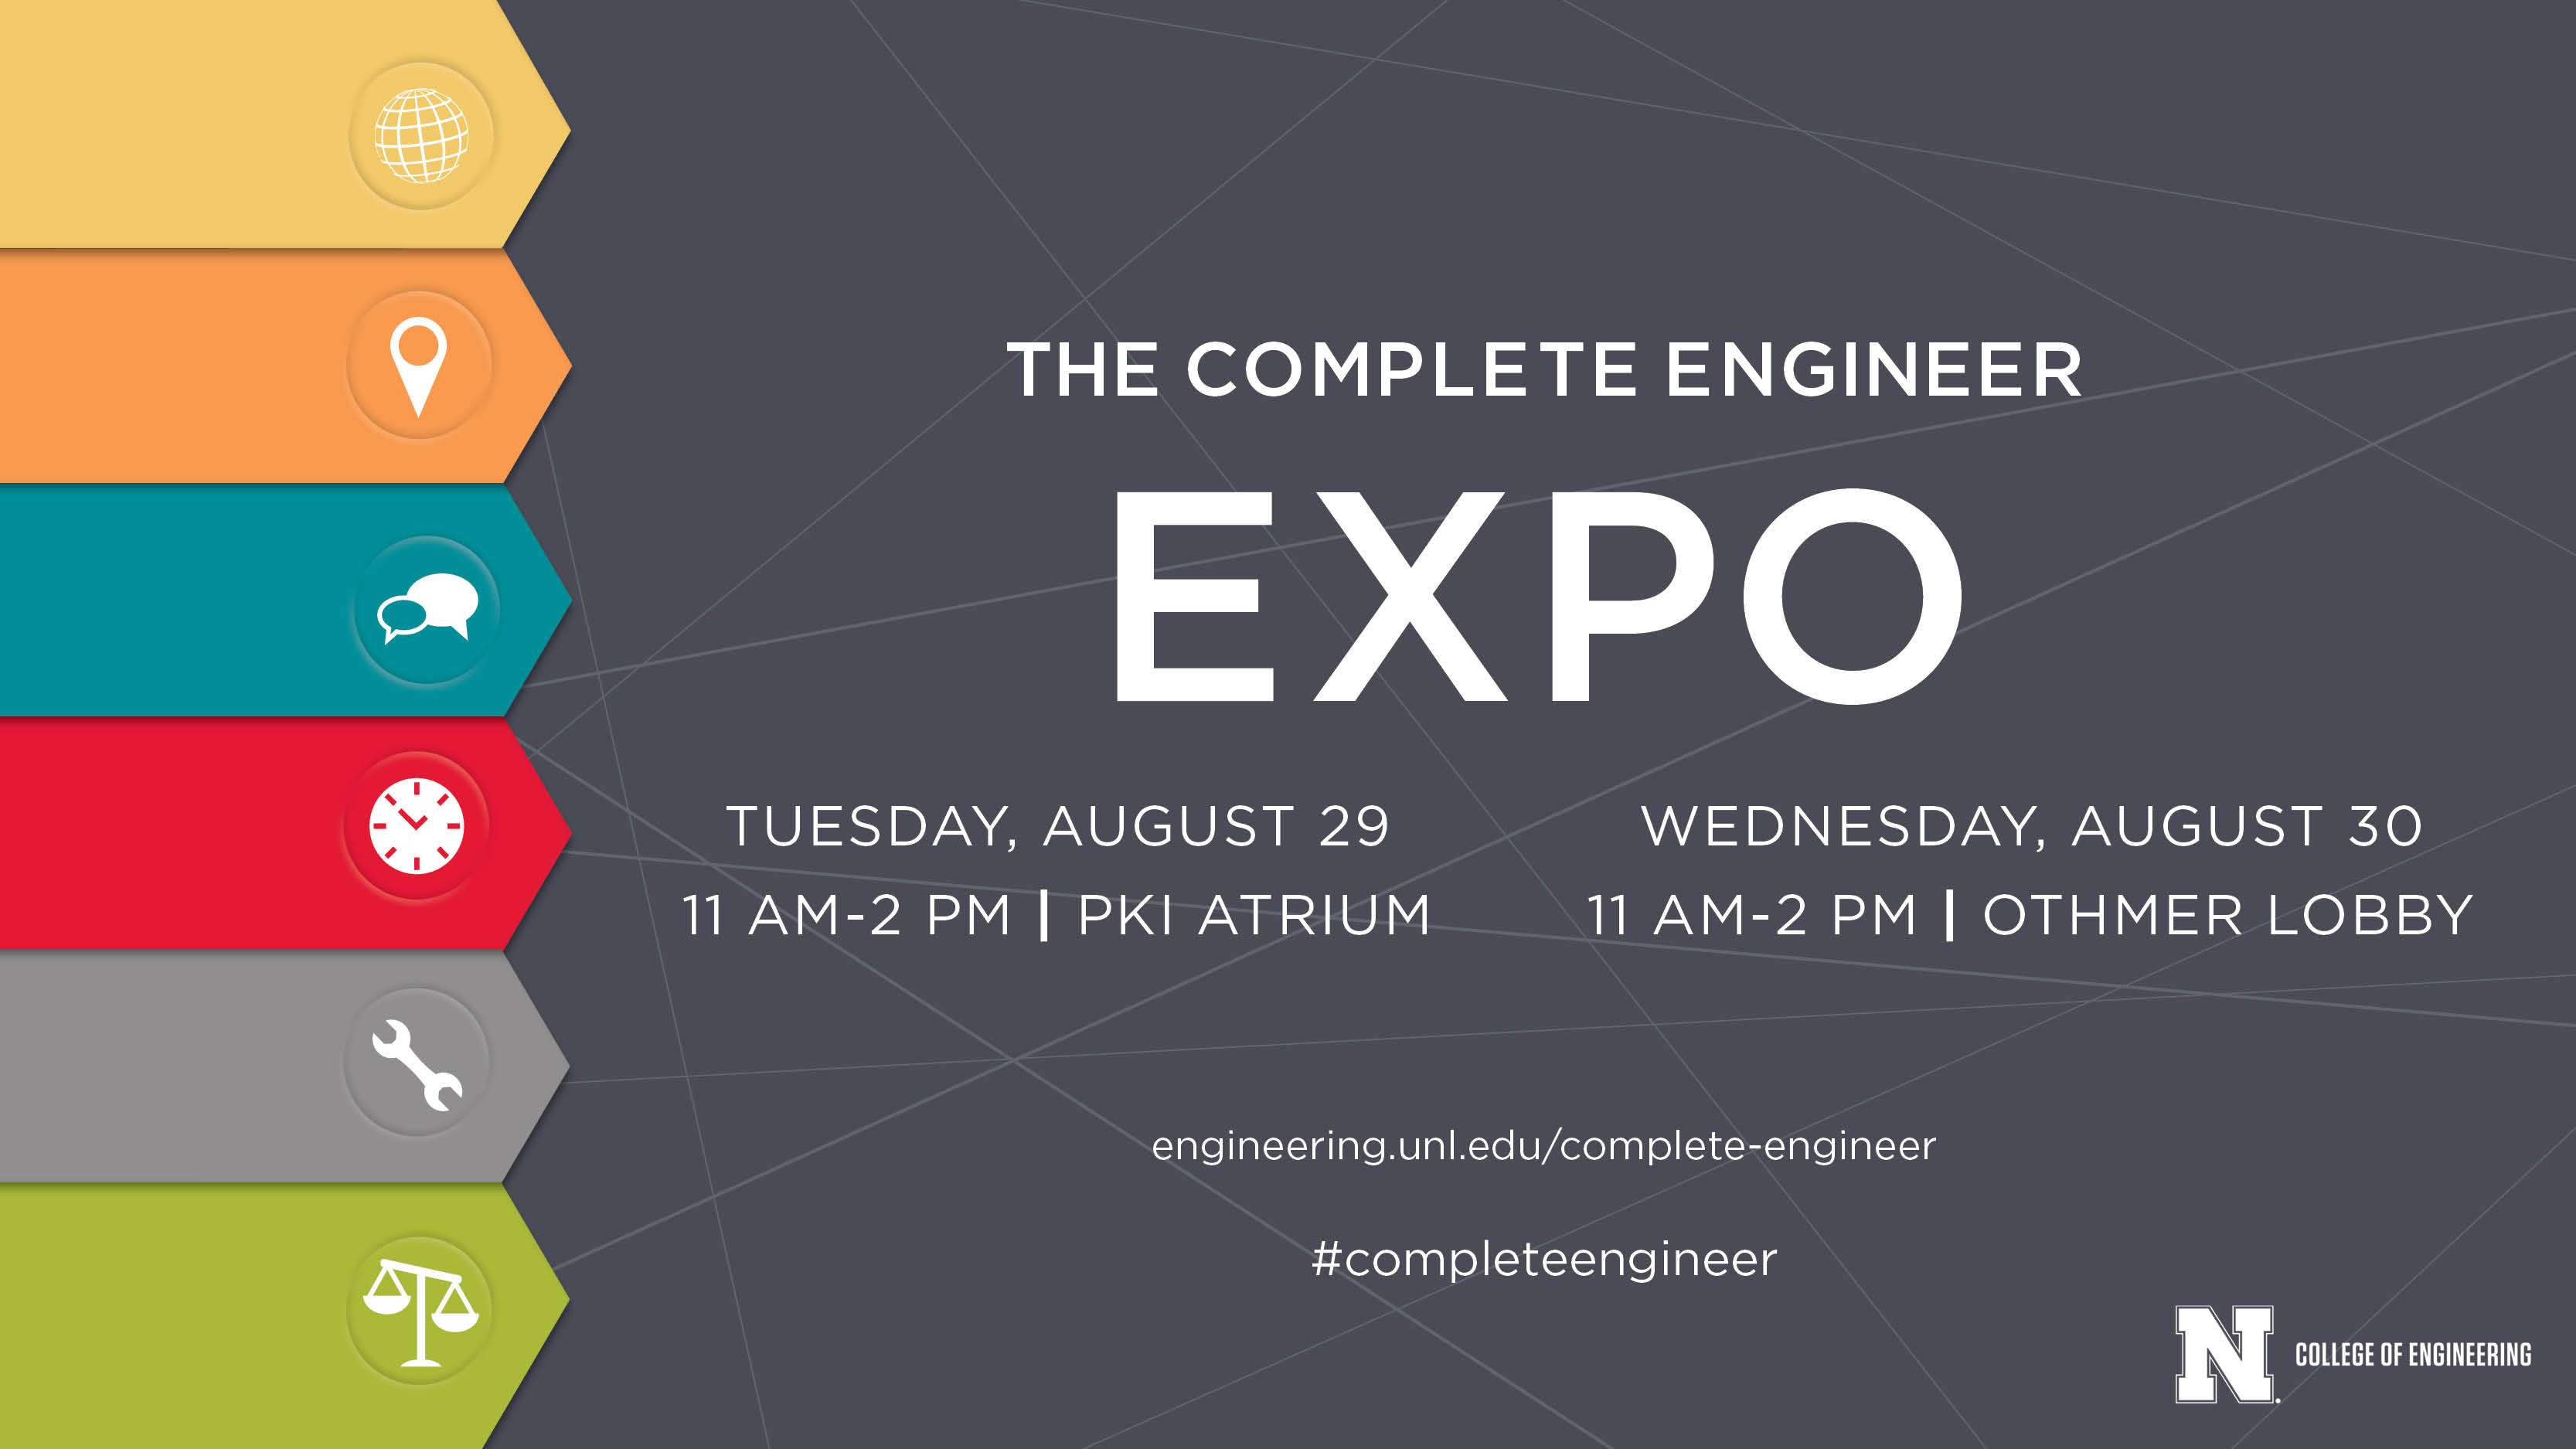 Complete Engineer Expos are Tuesday and Wednesday